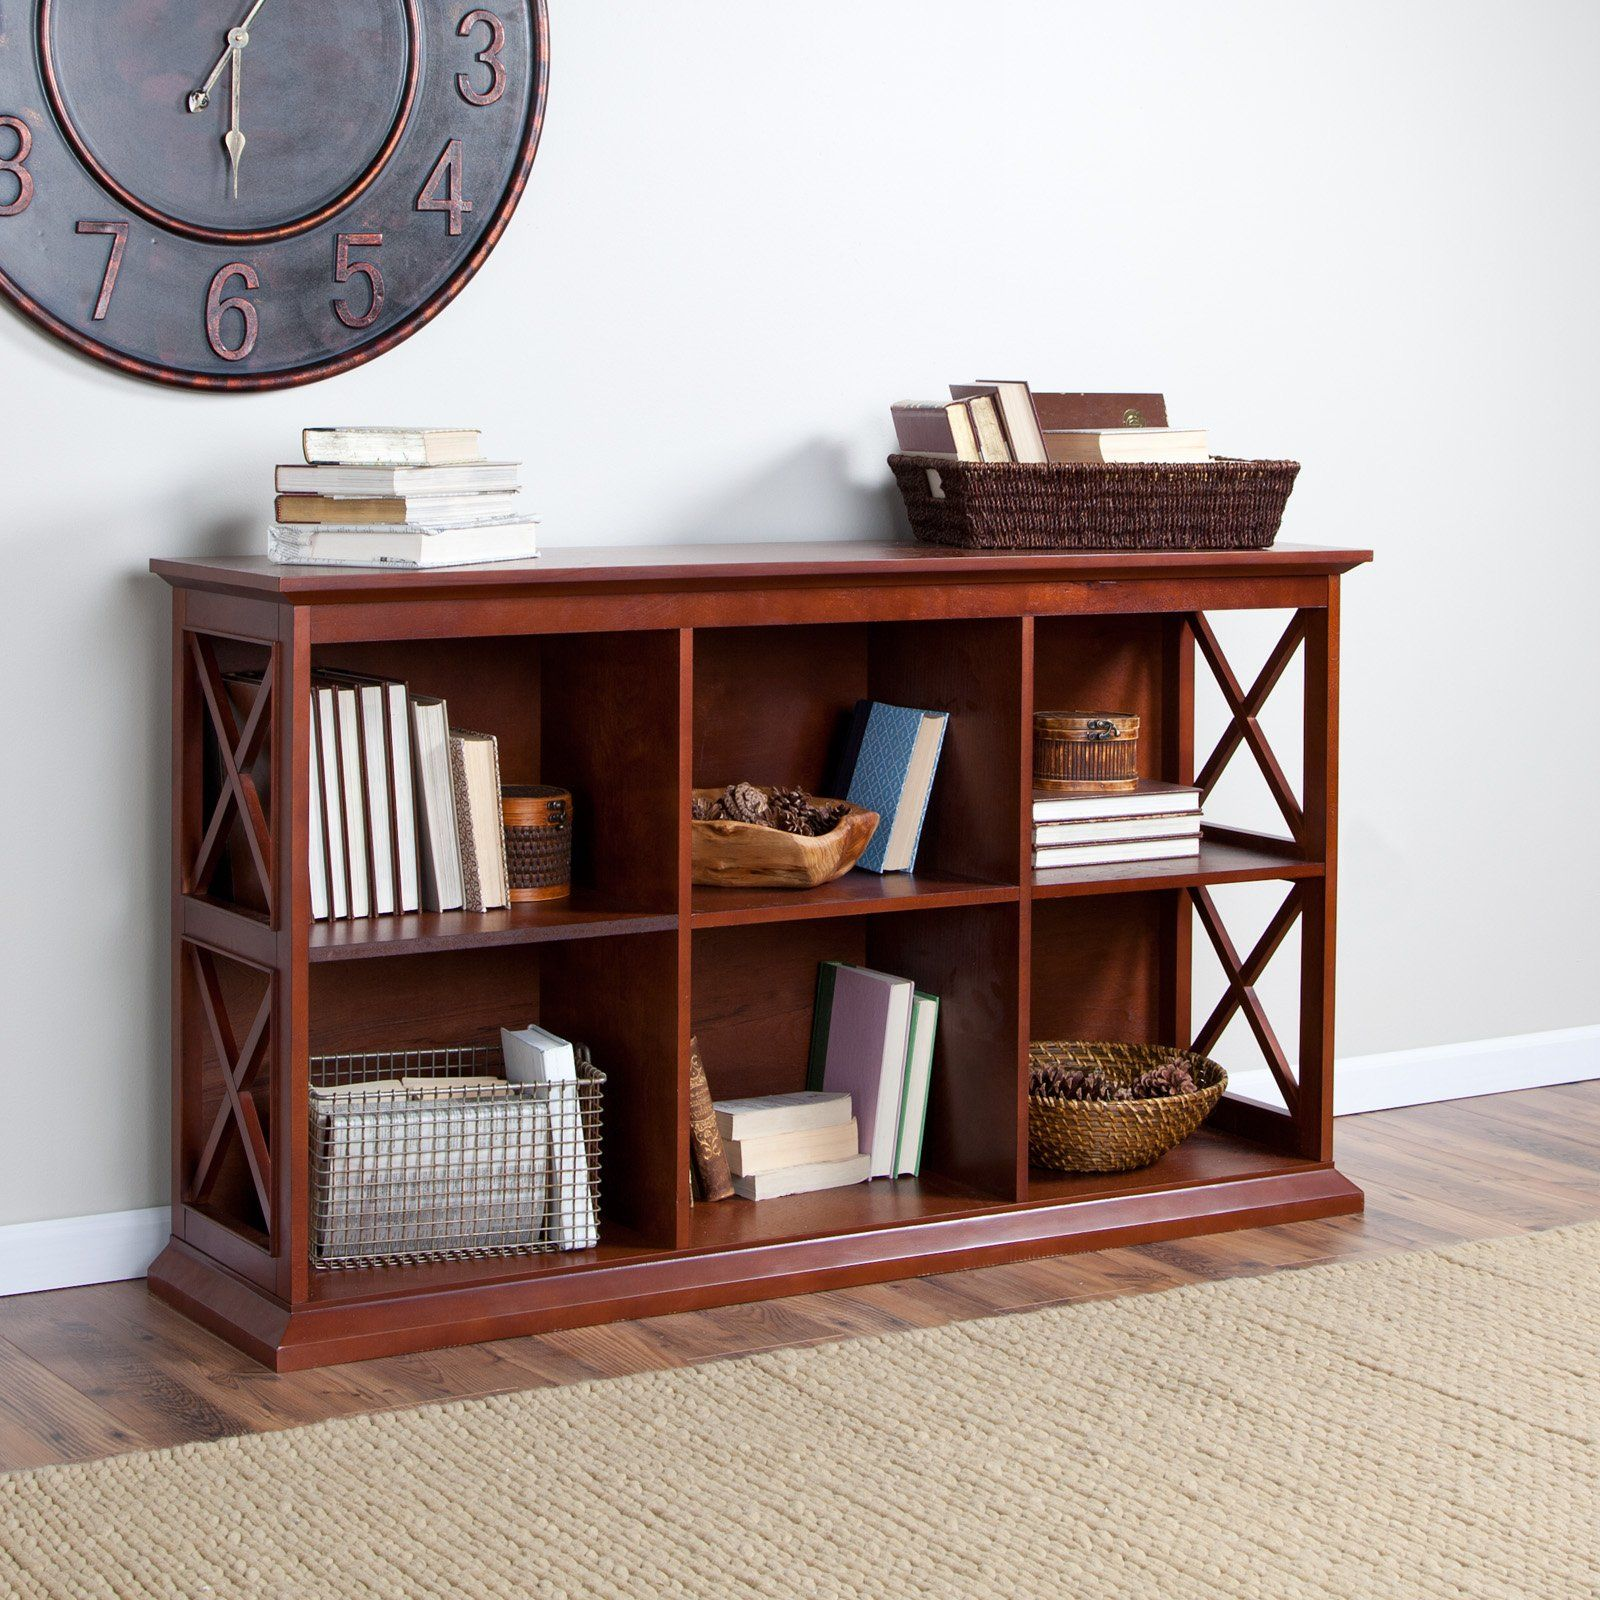 bookshelves storage archer coco bookcase home furniture table oak republic bookcases